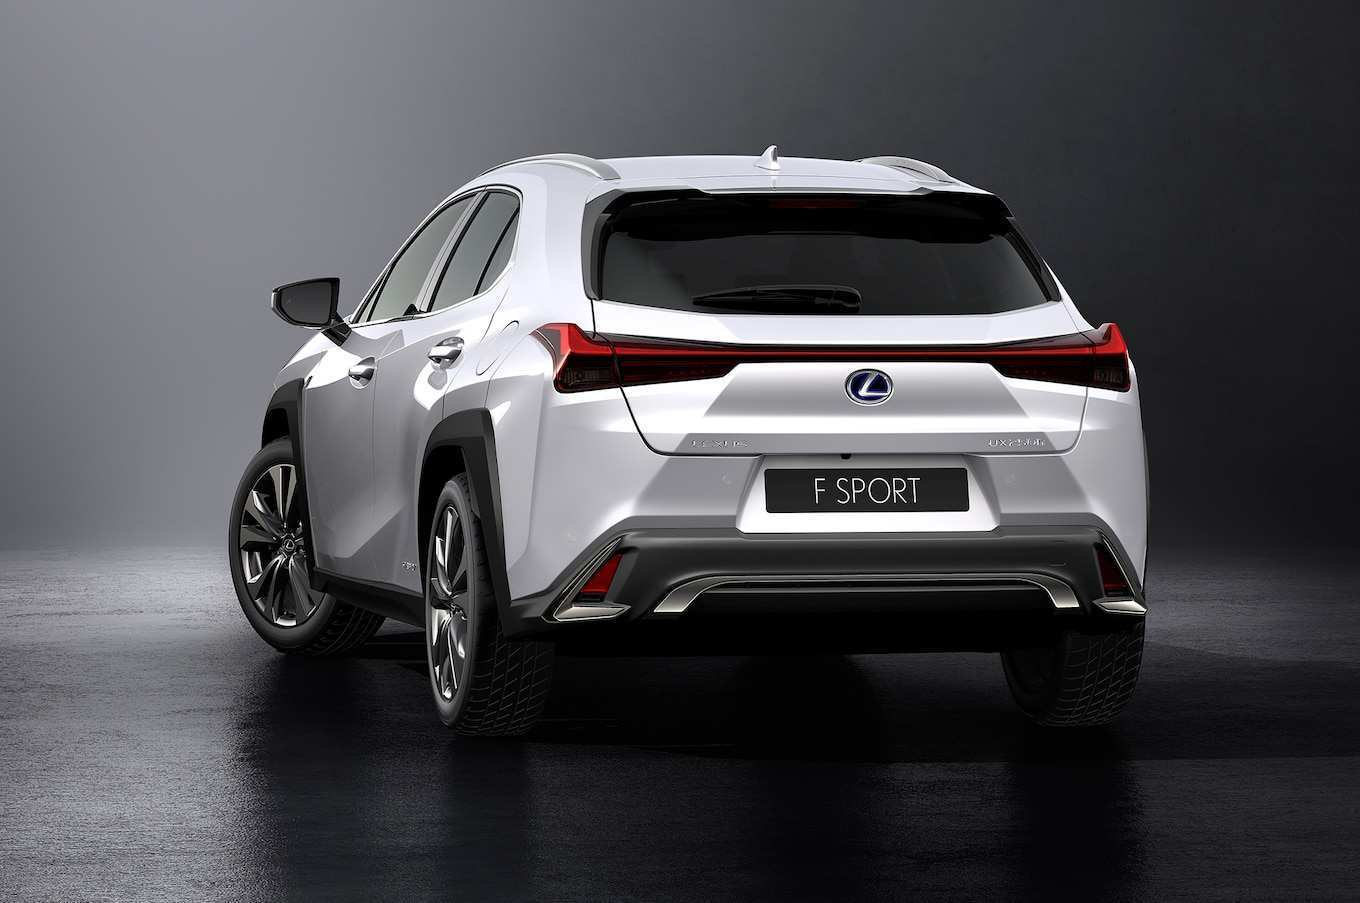 63 All New Lexus Ux 2019 Price 2 Price Design And Review